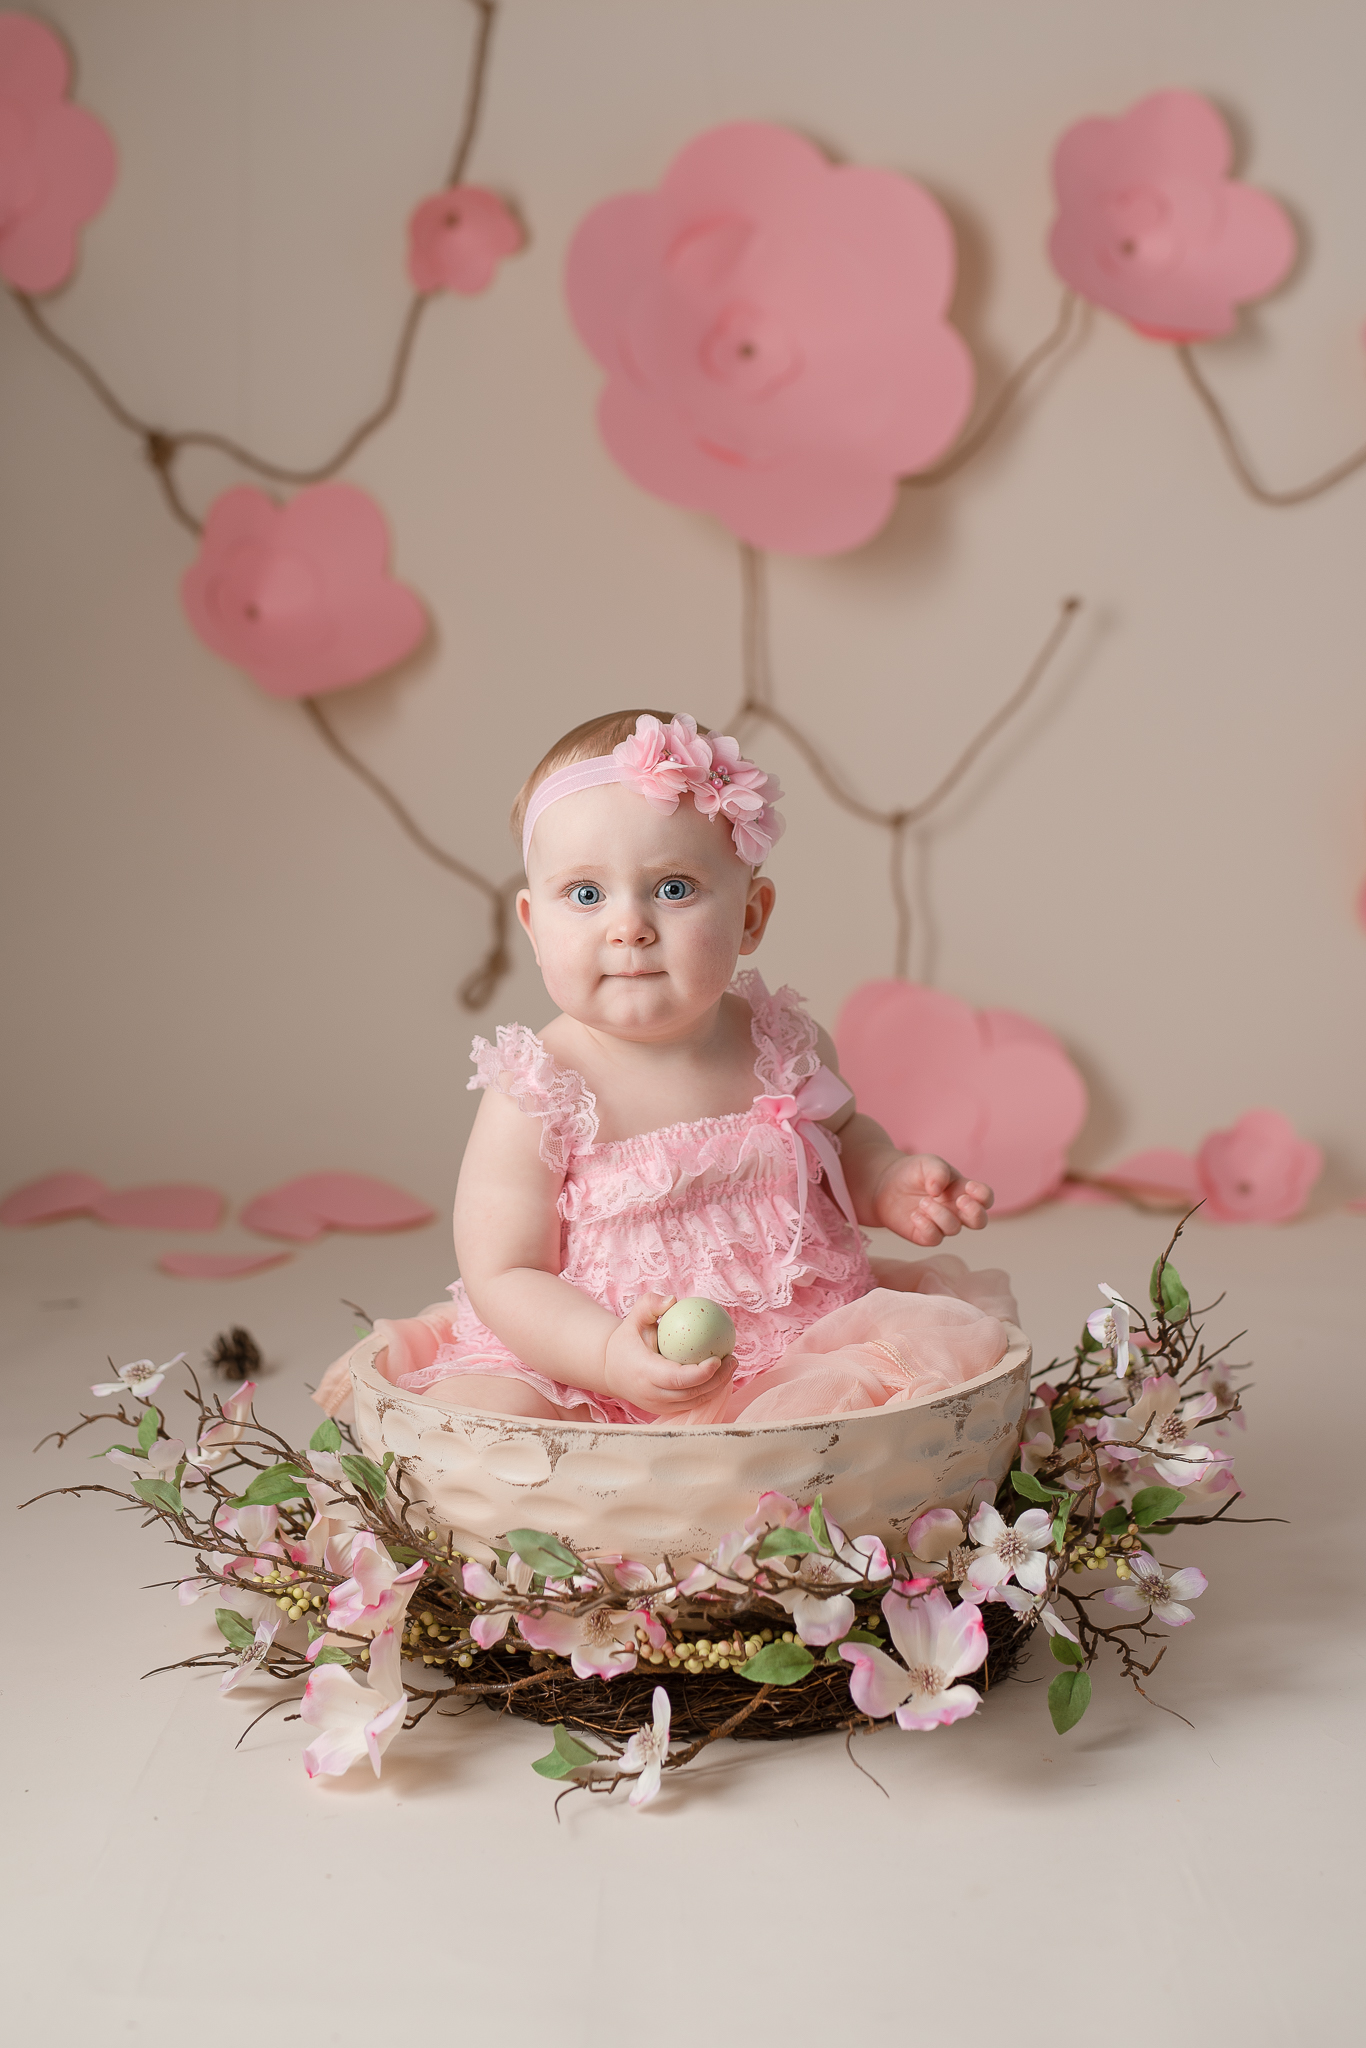 FirstBirthday13NaomiLuciennePhotography032019-Edit.jpg